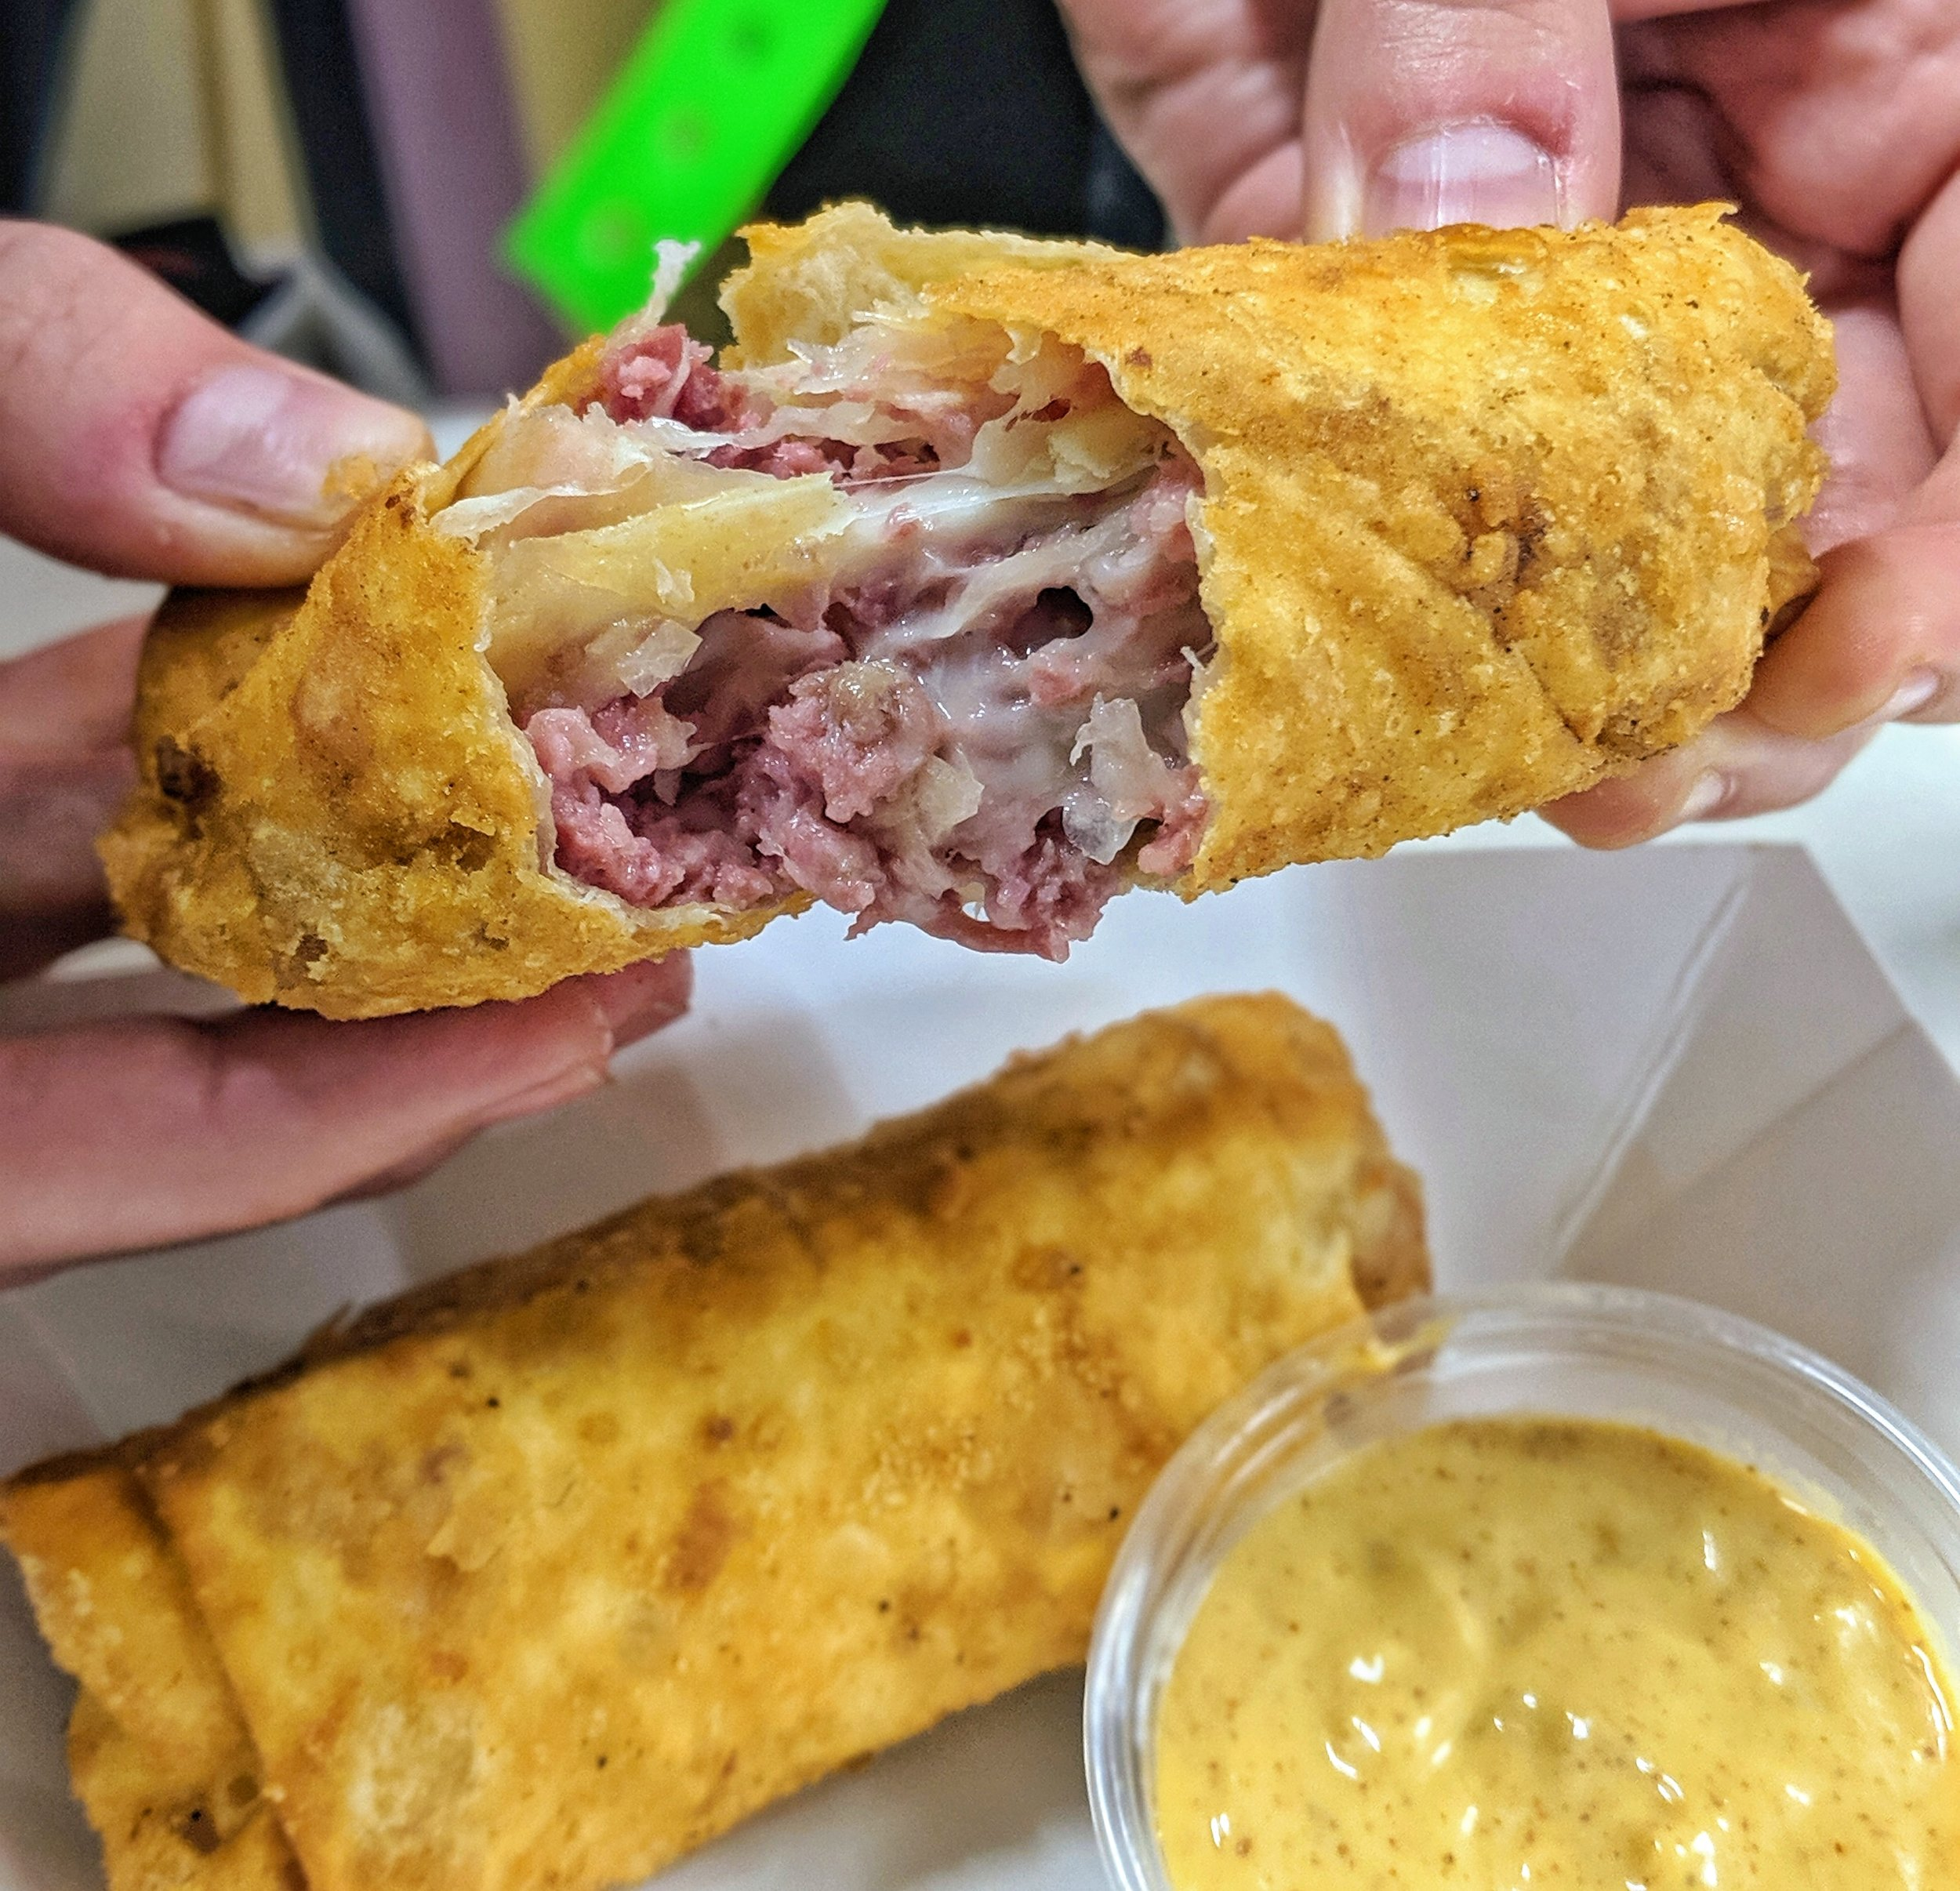 #2. Reuben Egg Rolls - When I first started stalking the Summerfest food lineup a few weeks ago, the Buffalo Chicken Eggrolls were on the top of my list to try. Once we got there Mike insisted that we try the Reuben Eggrolls from Mader's since he had eaten them a few years ago and loved them. The Reuben Eggrolls are stuffed with Corned Beef, Swiss Cheese, Sauerkraut and served with a Zesty Mustard Sauce.